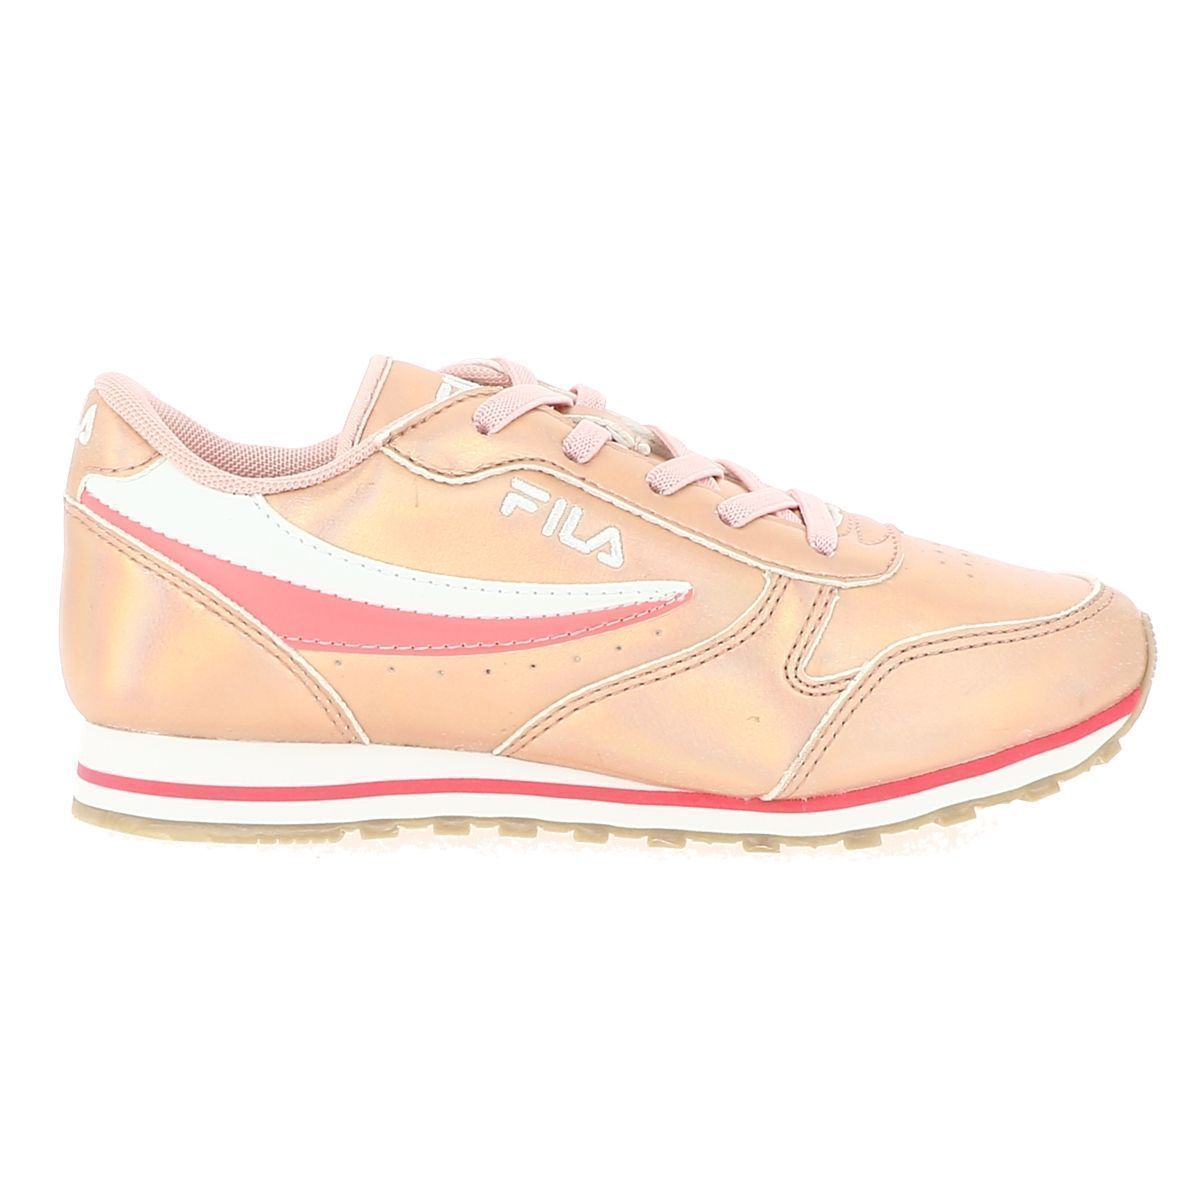 MARTINAI ORBIT F LOW KIDS:ROSE/SYNTHETIQUE/TEXTILE/CAOUTCHOUC/Rose